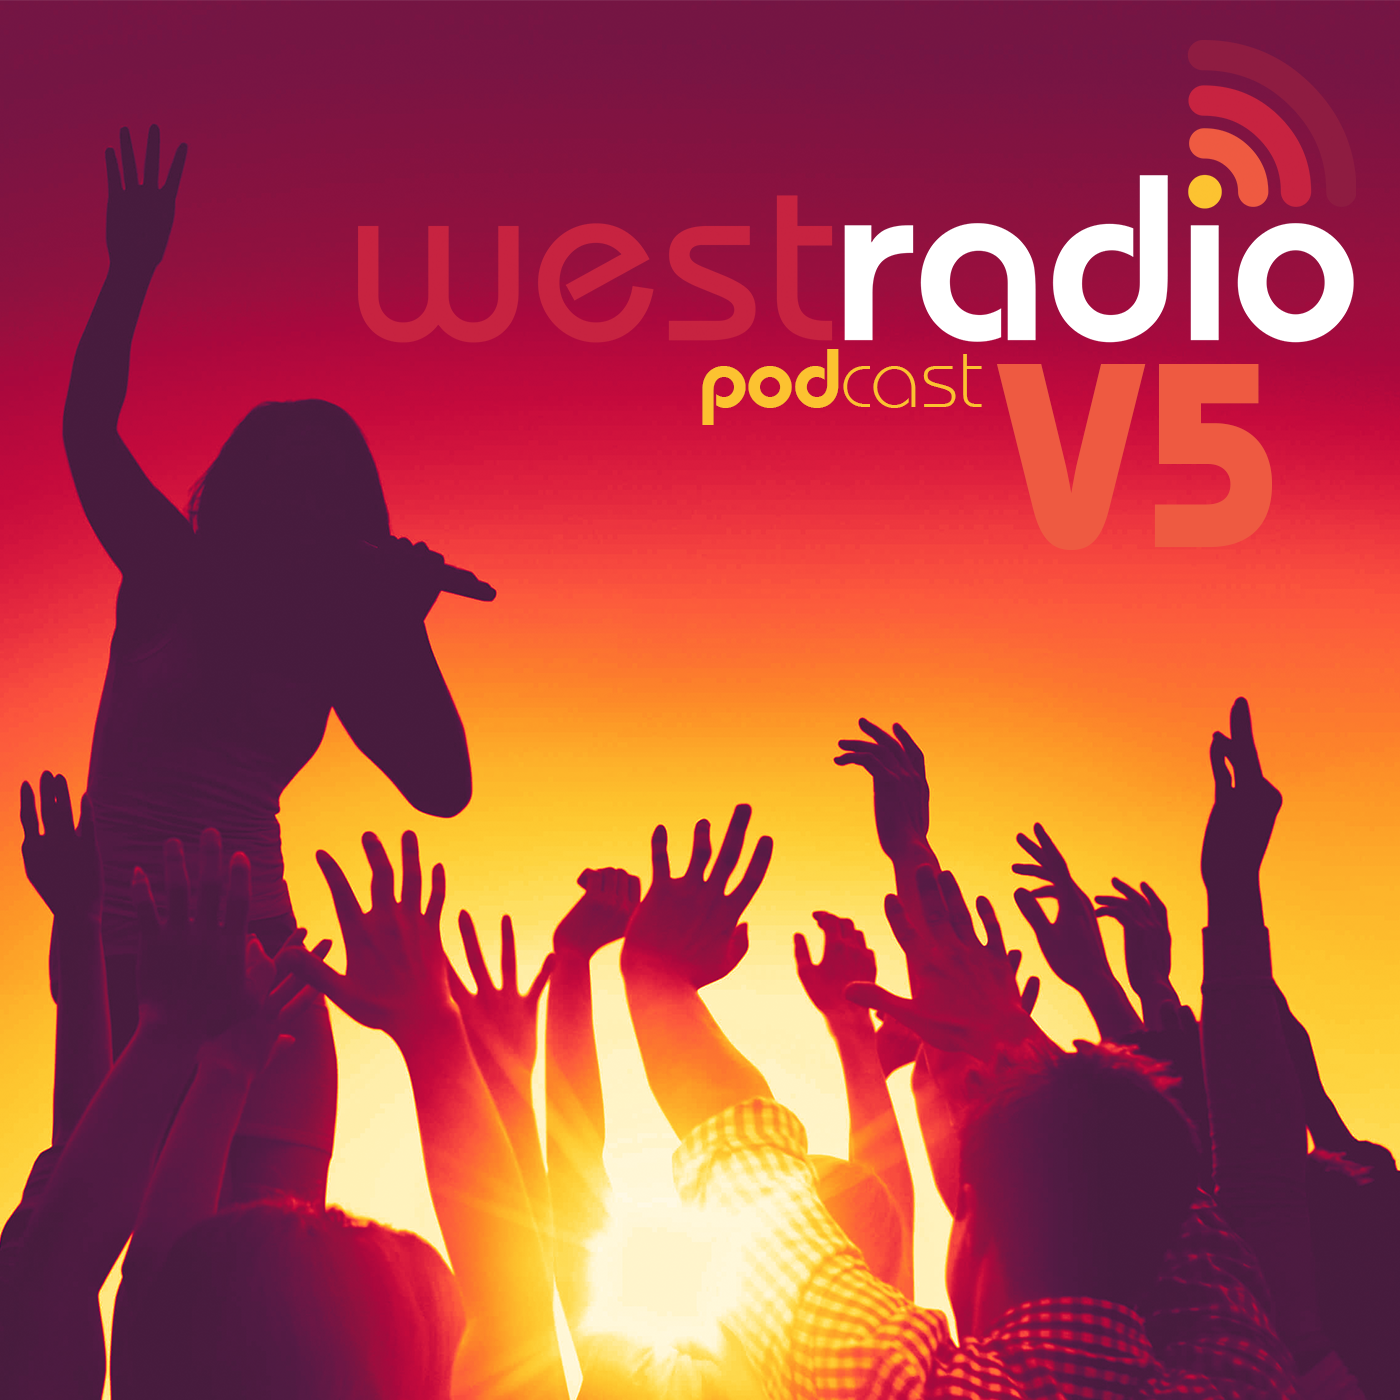 WestRadio - Podcast - Vince 05